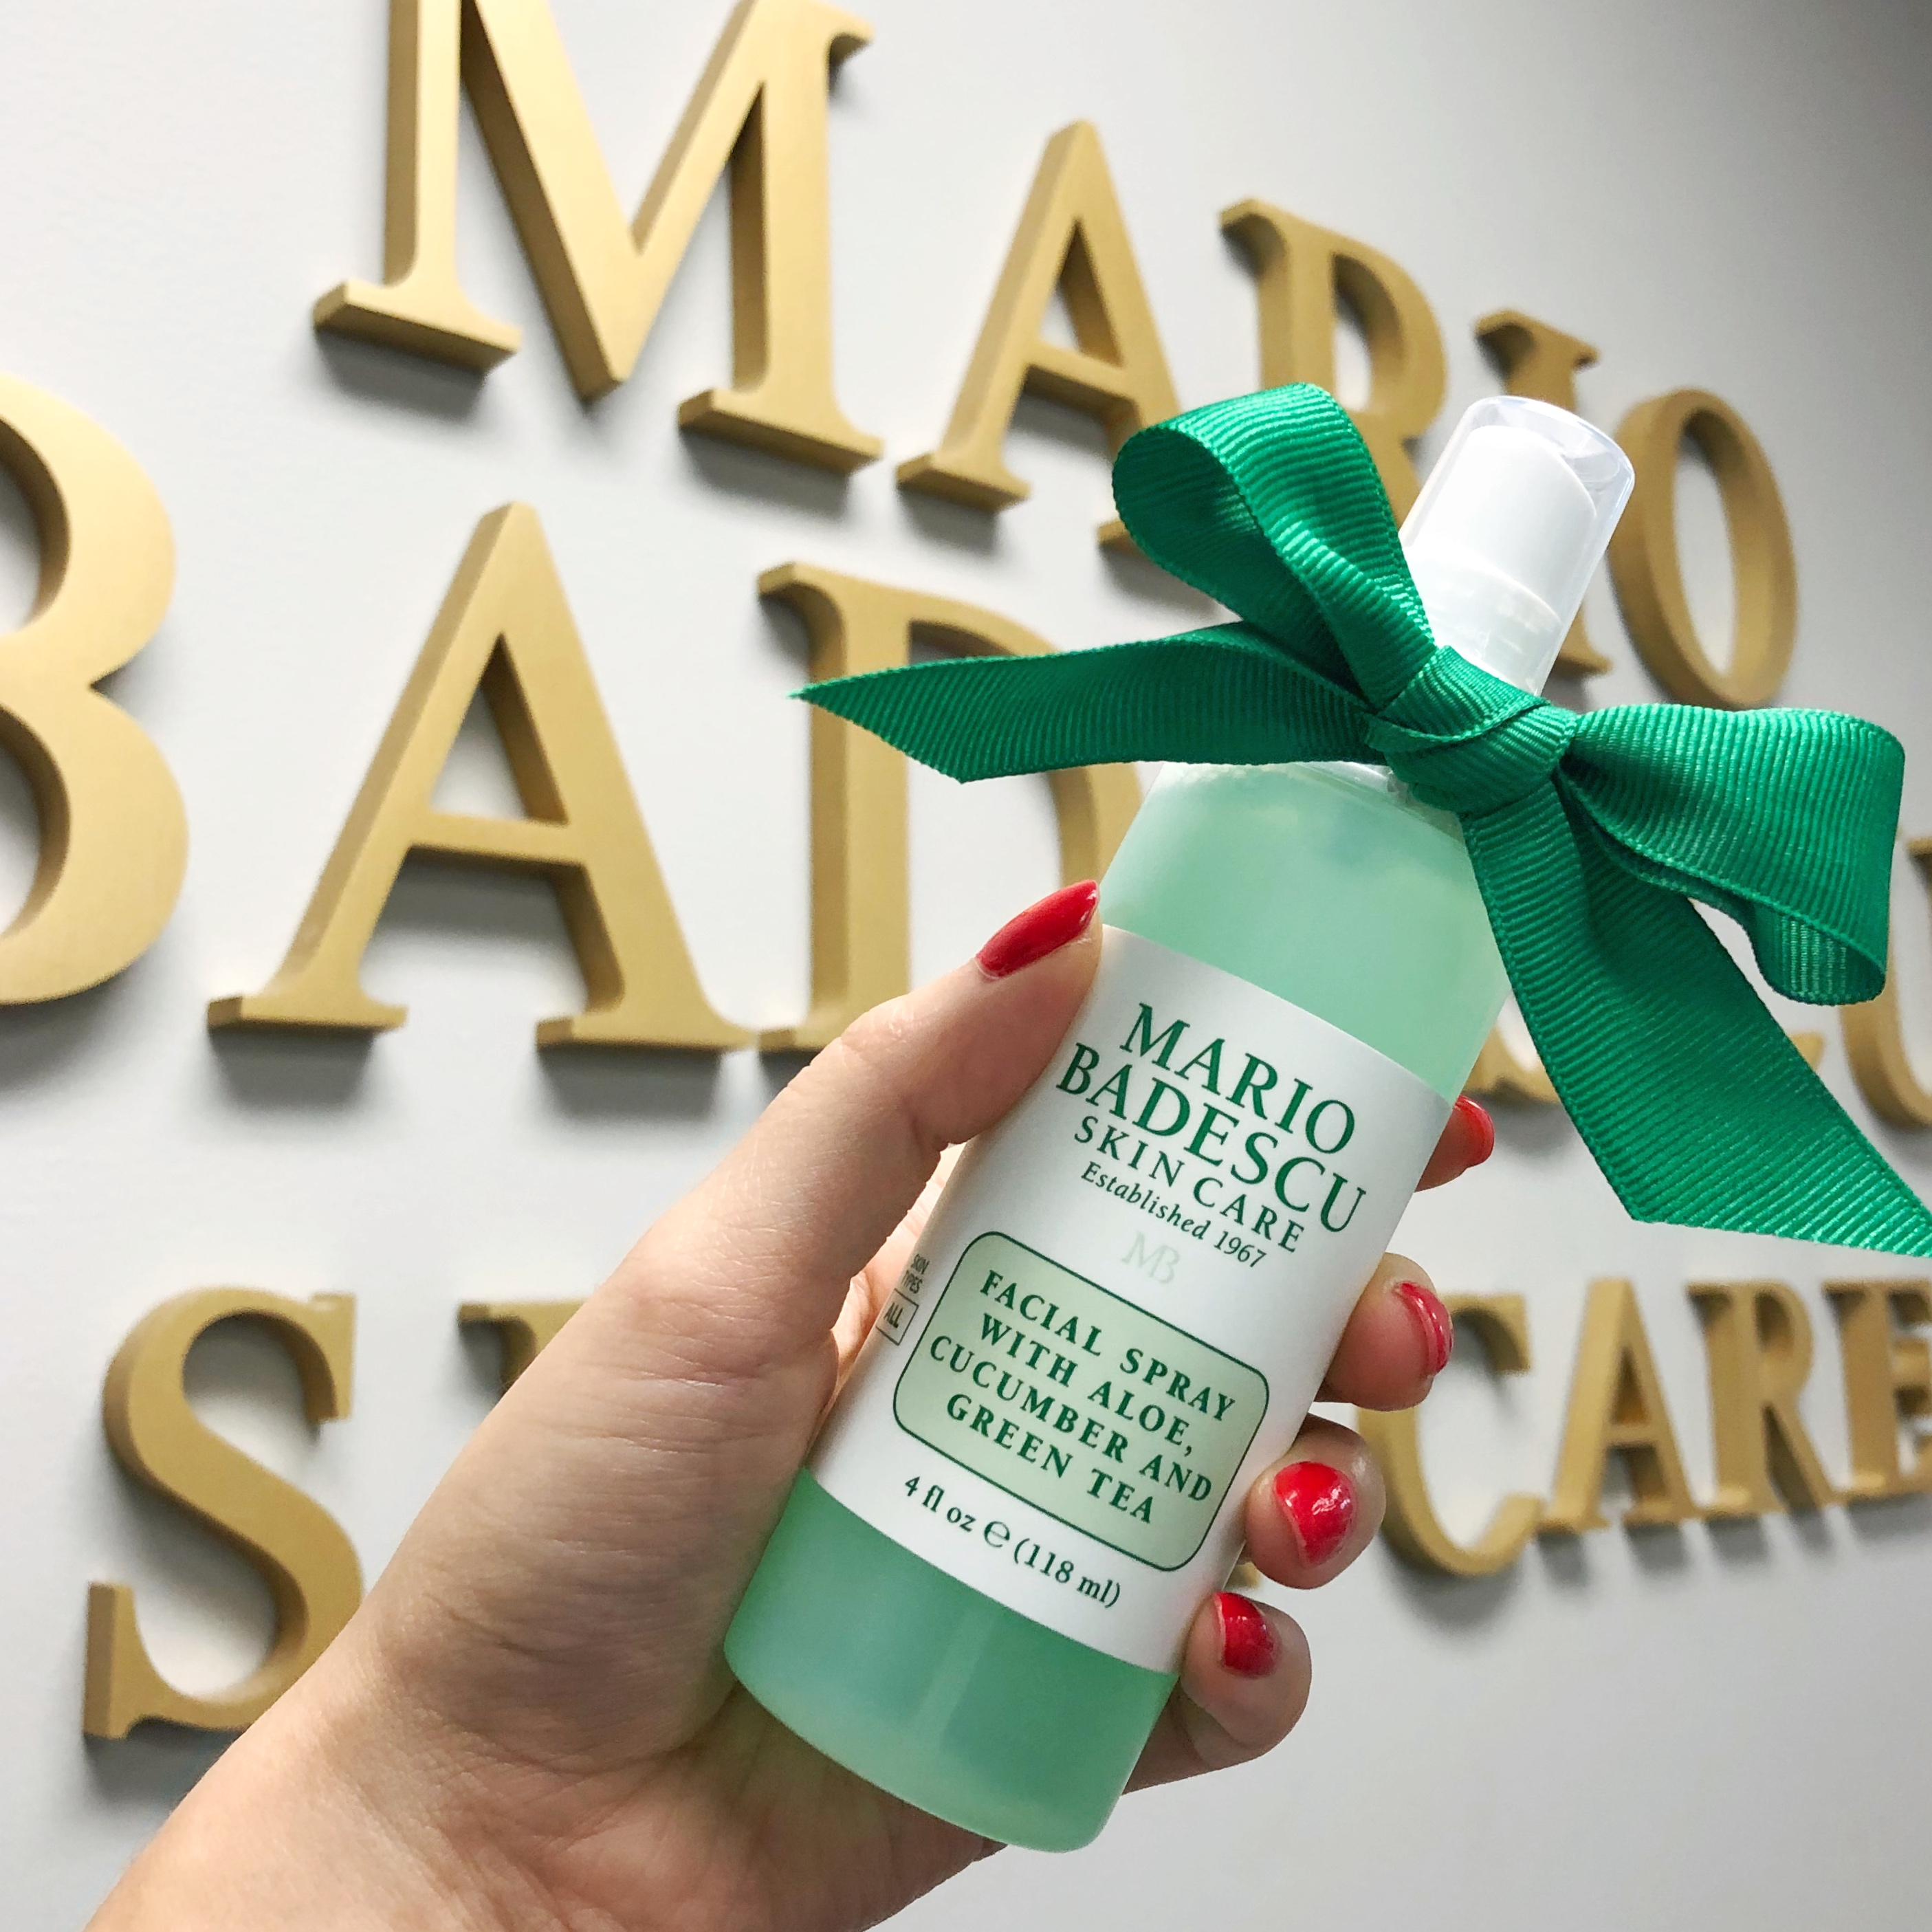 Mario Badescu Holiday Gift Guide 2017 For Her and Him